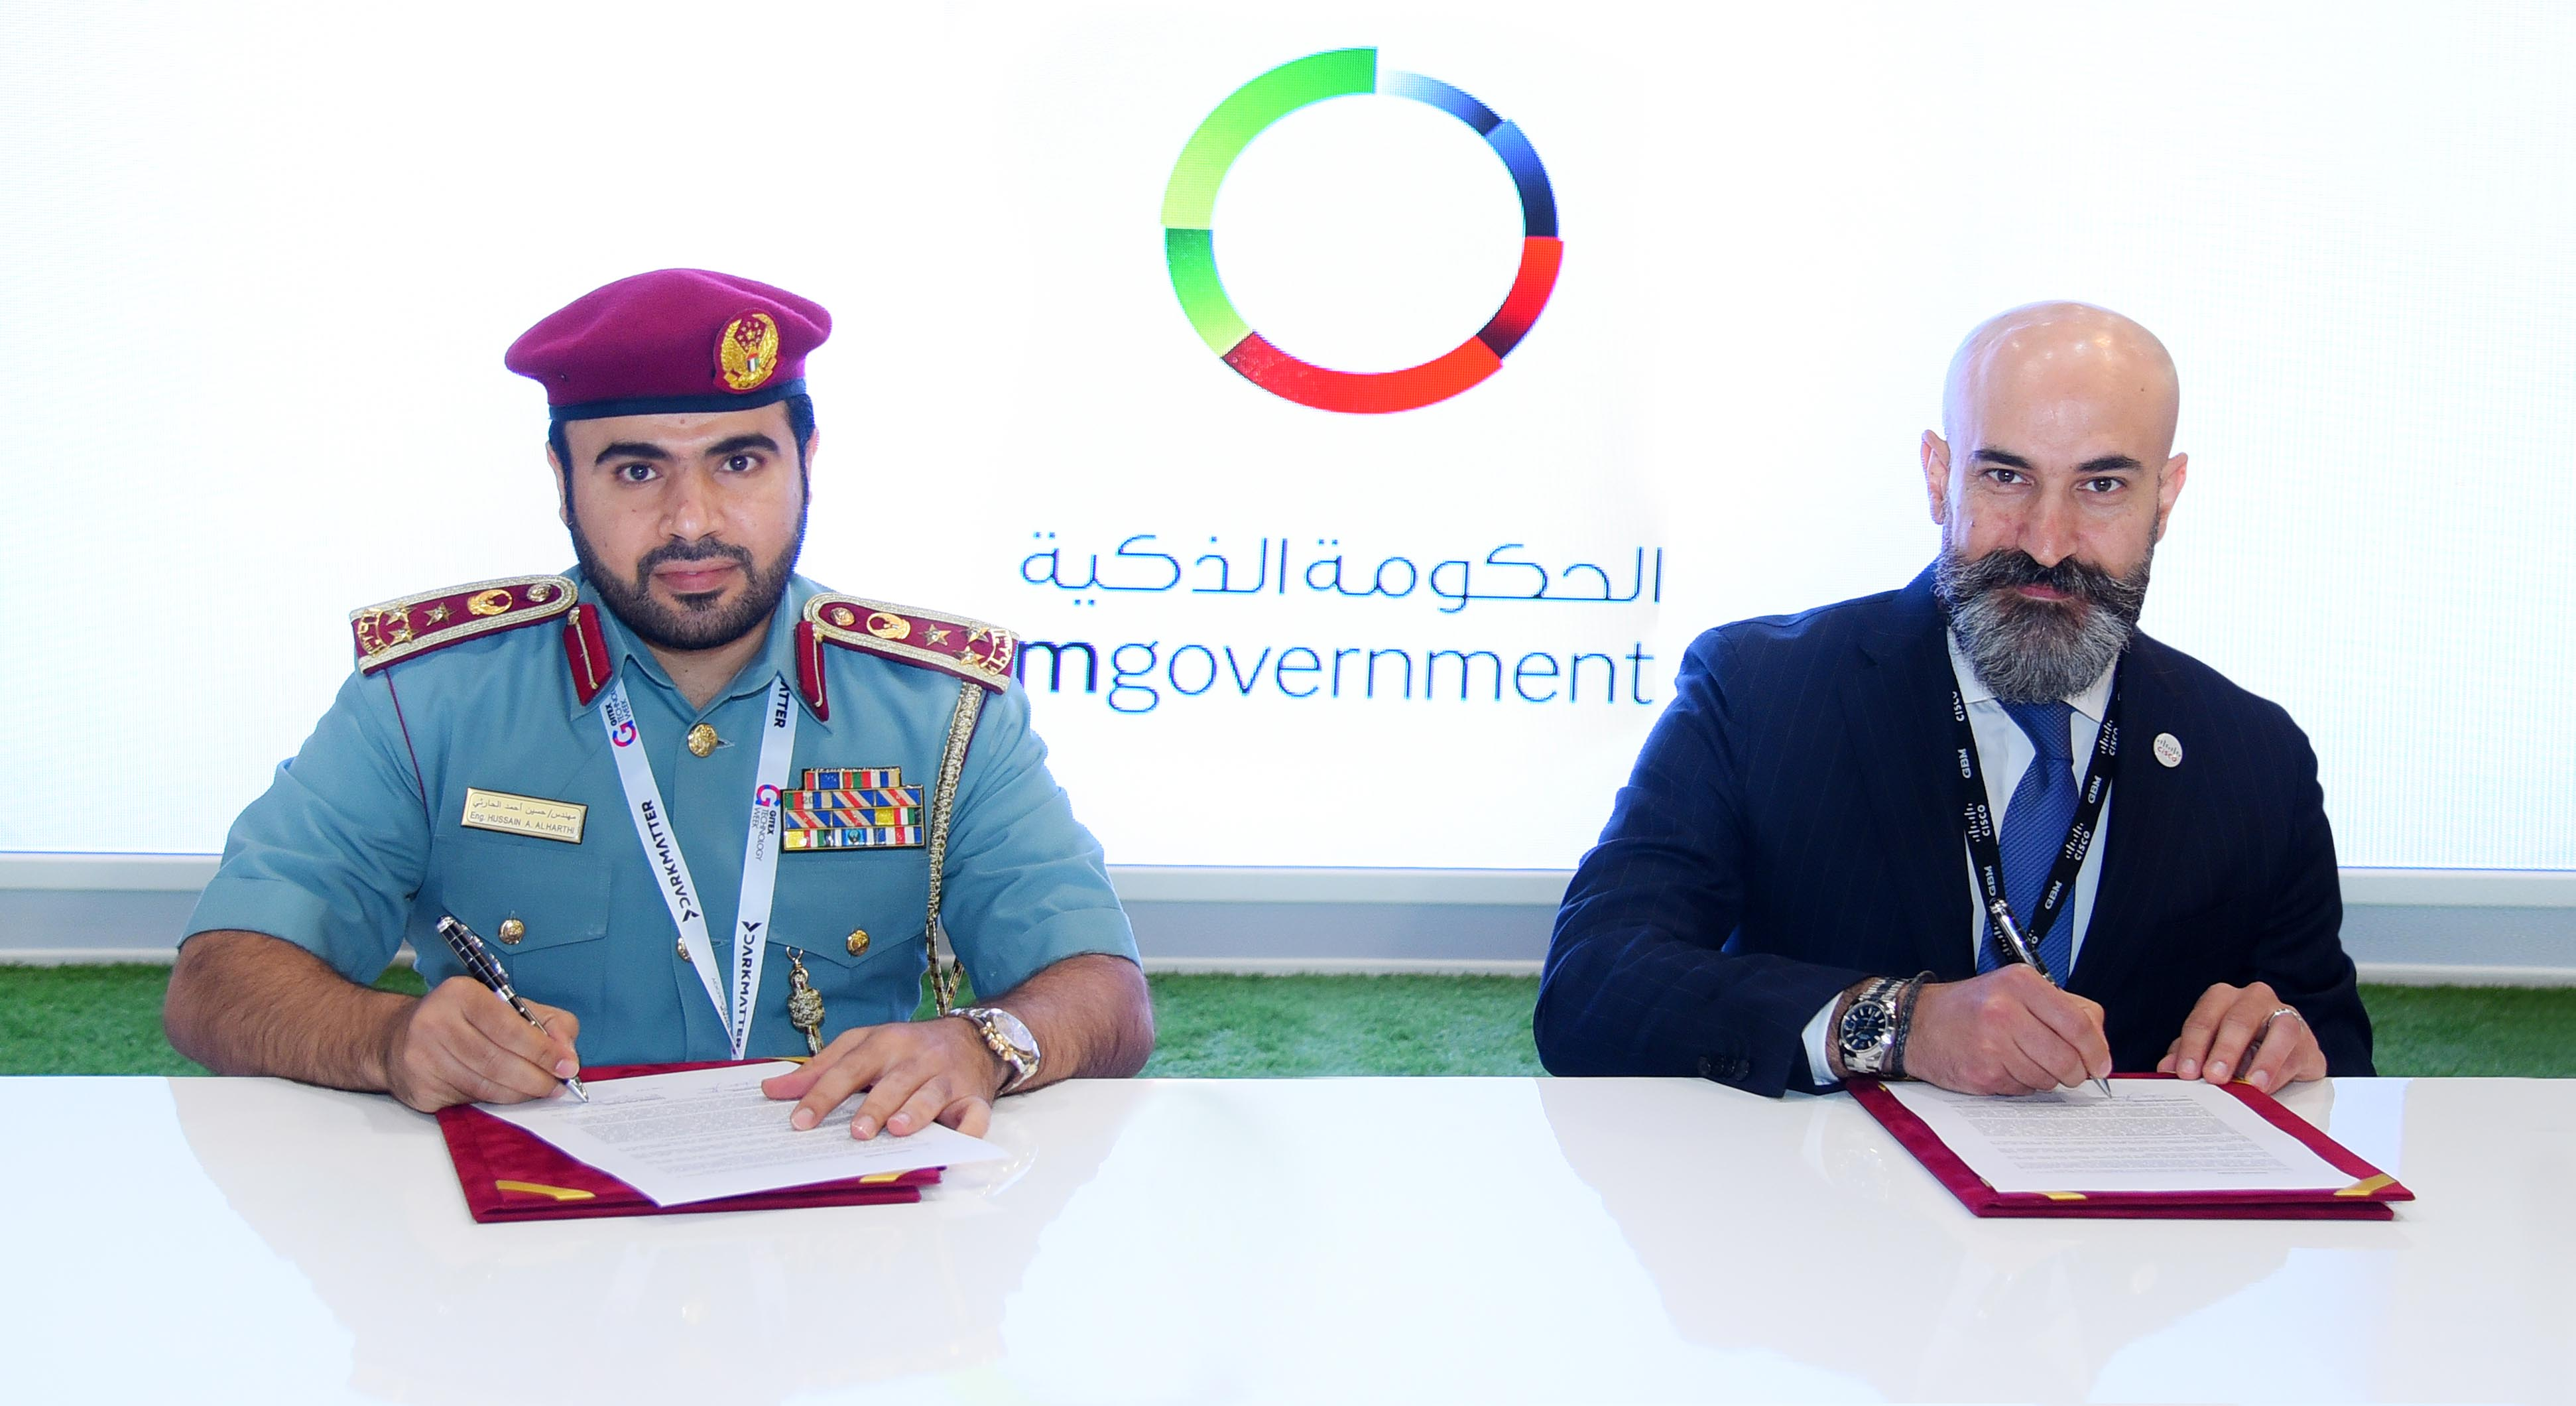 UAE MoI progresses in deploying Cisco collaboration solution